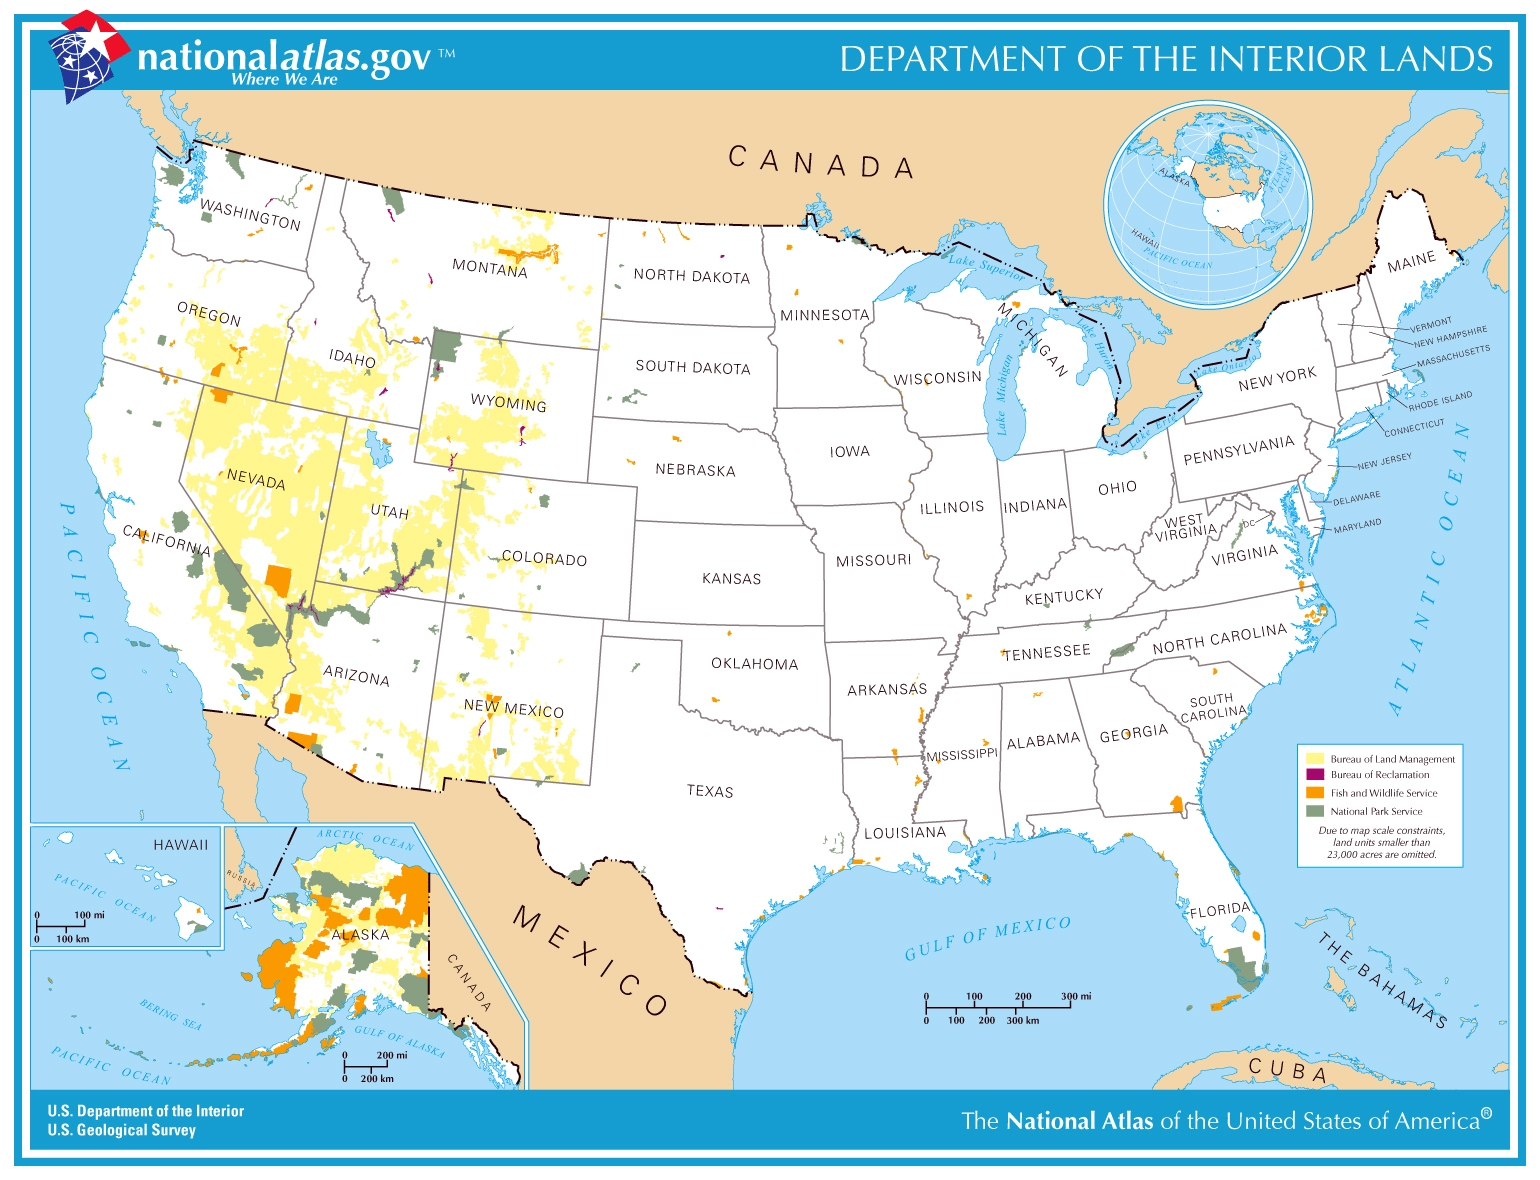 Printable Map - Department Of The Interior Lands - Usgs Printable Maps